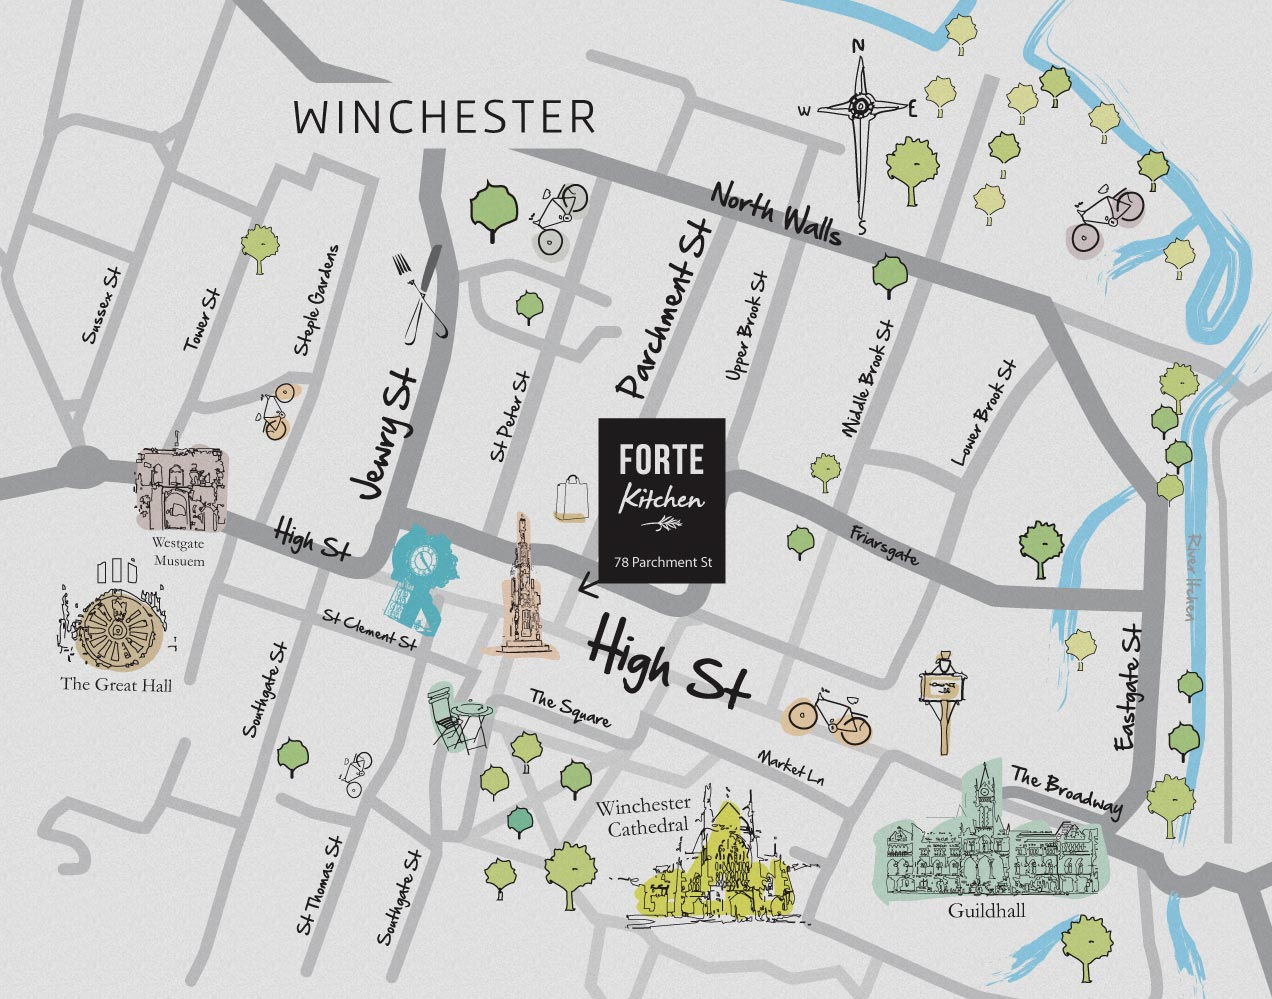 Forte Kitchen Restaurant And Cafe In Winchester Hampshire - Us parchment map